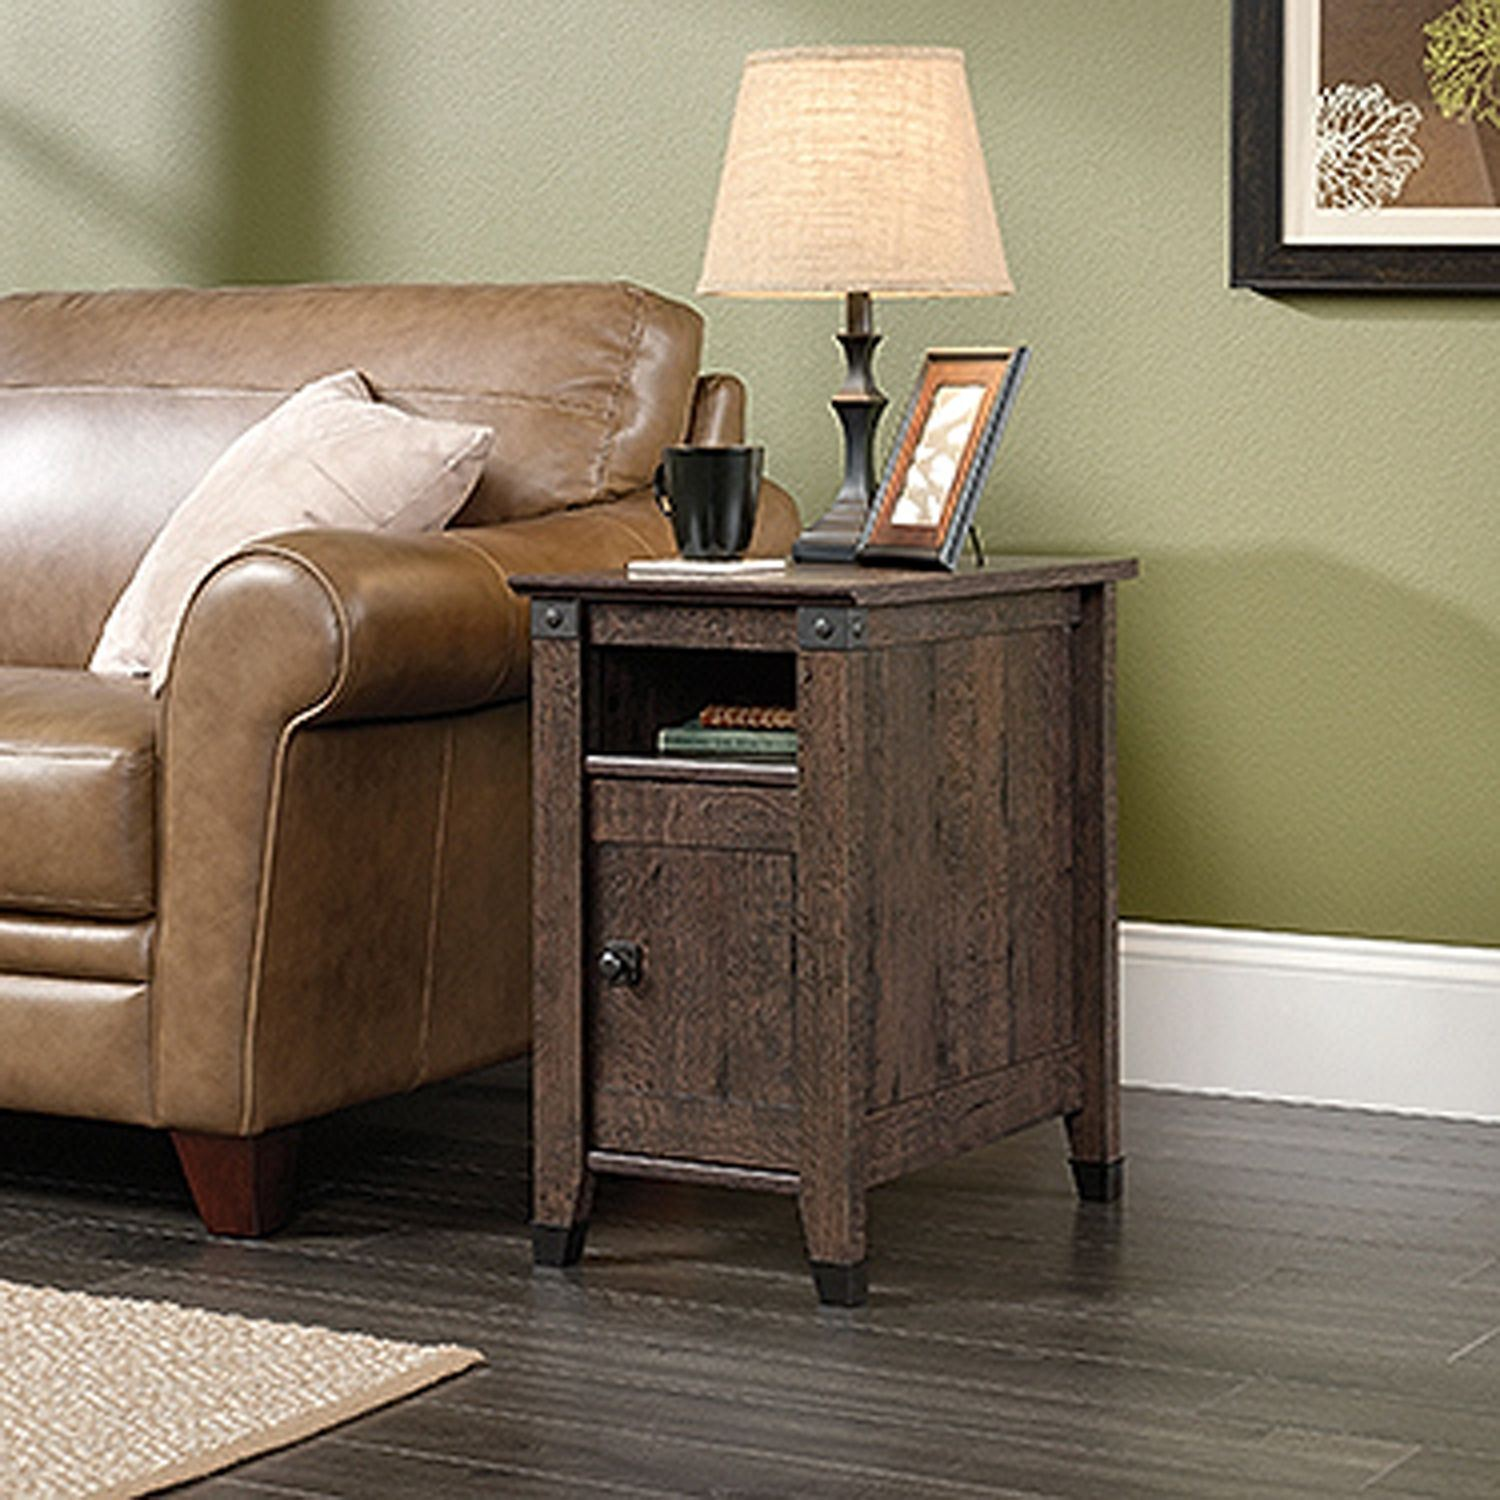 carson forge side table coffee oak sauder woodworking furniture end tables ture stickley desk chair dog cage ideas universal carly legends entertainment liberty collection hill